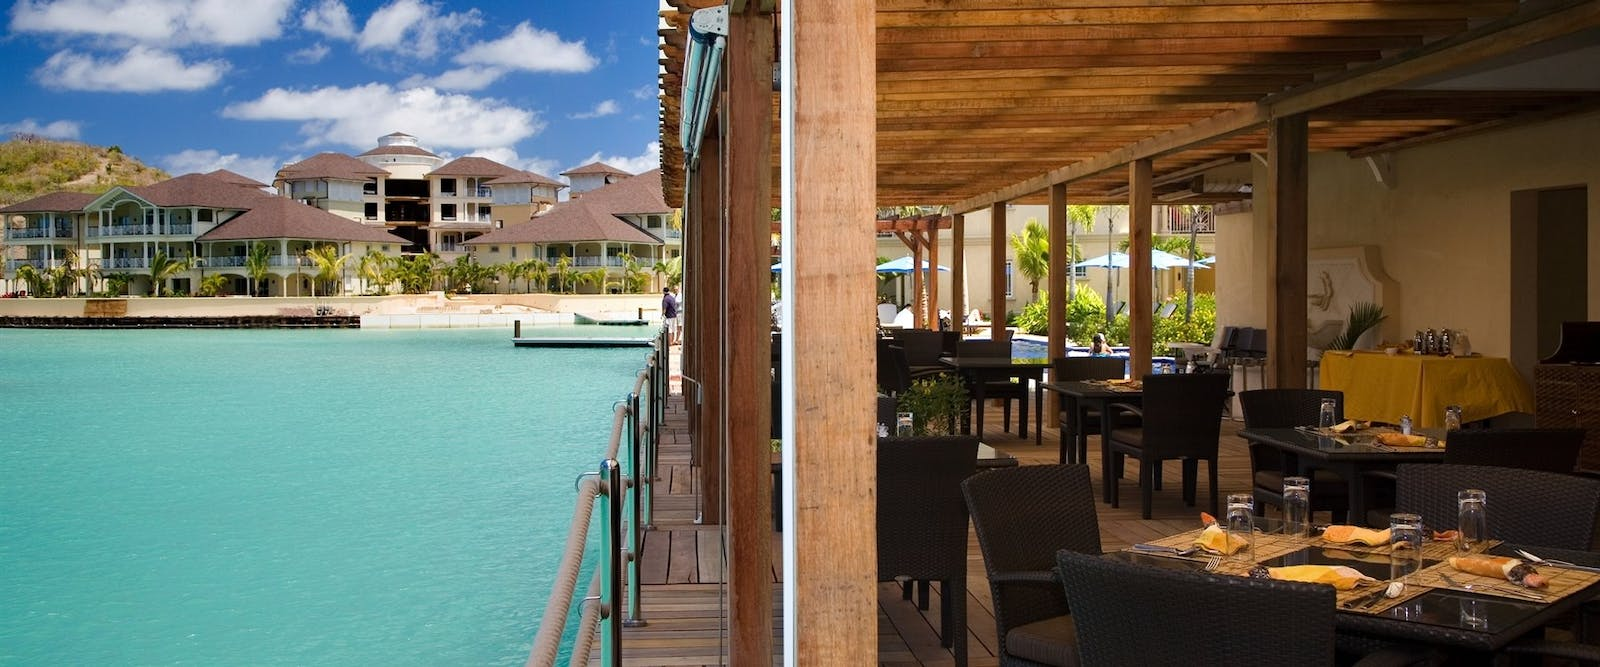 The Beach Club at The Landings Resort and Spa by Elegant Hotels, St Lucia